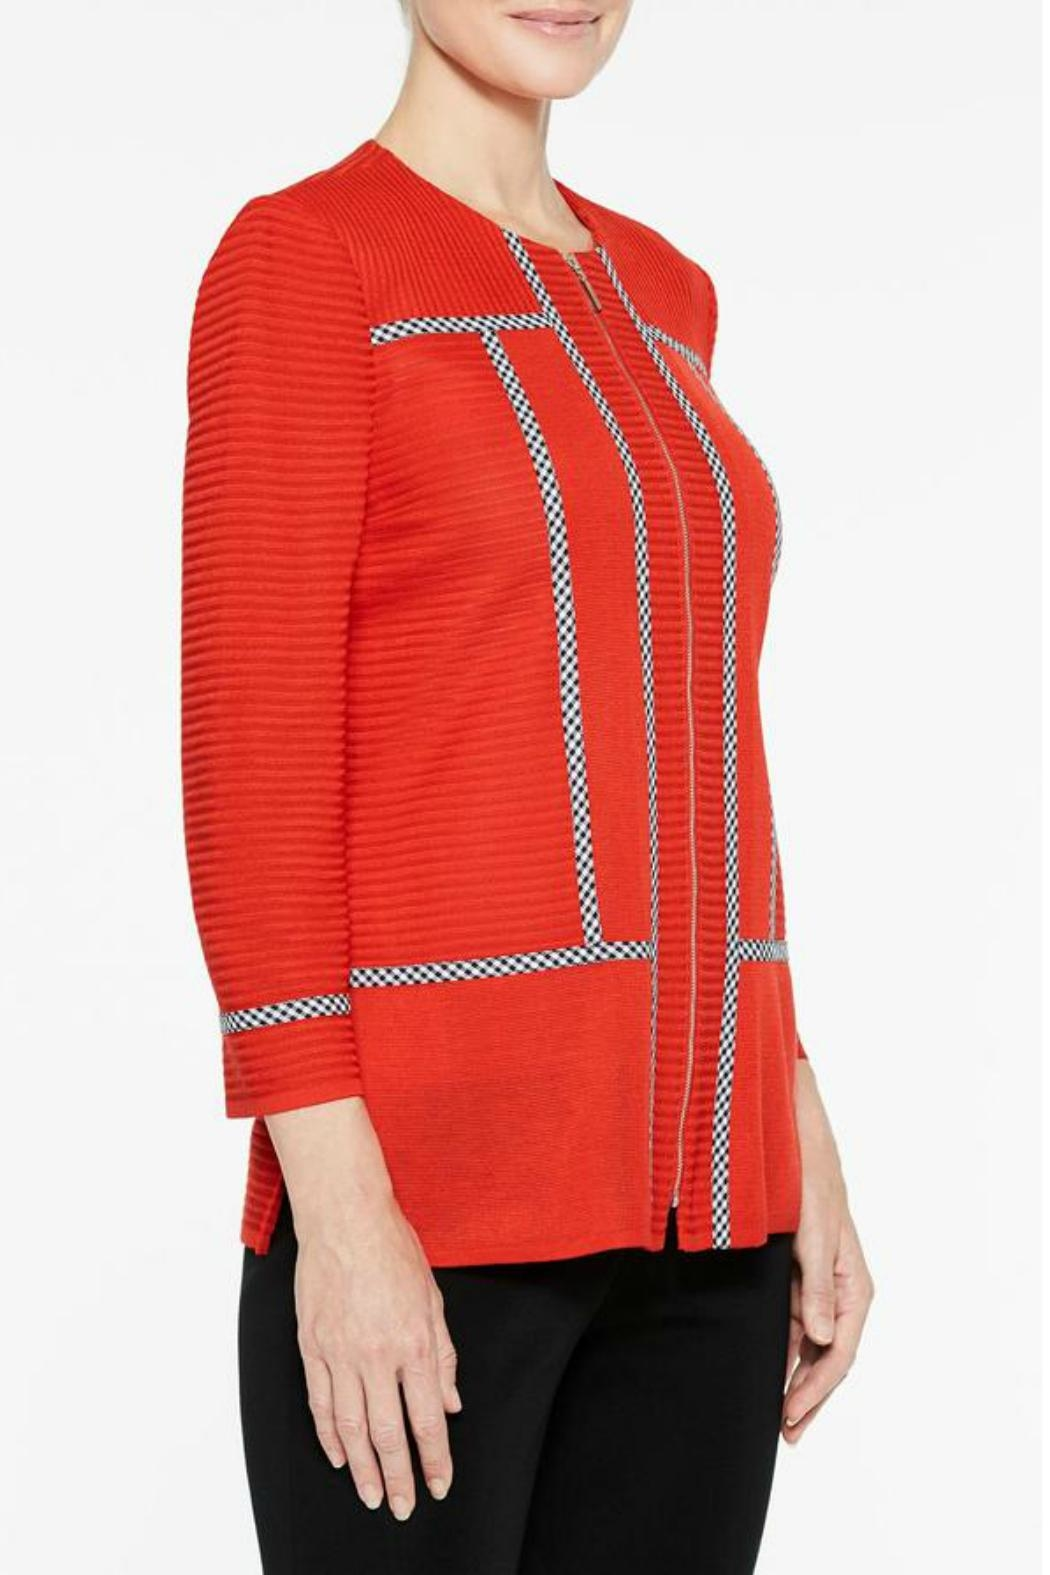 Ming Wang Poppy Red Jacket - Front Full Image